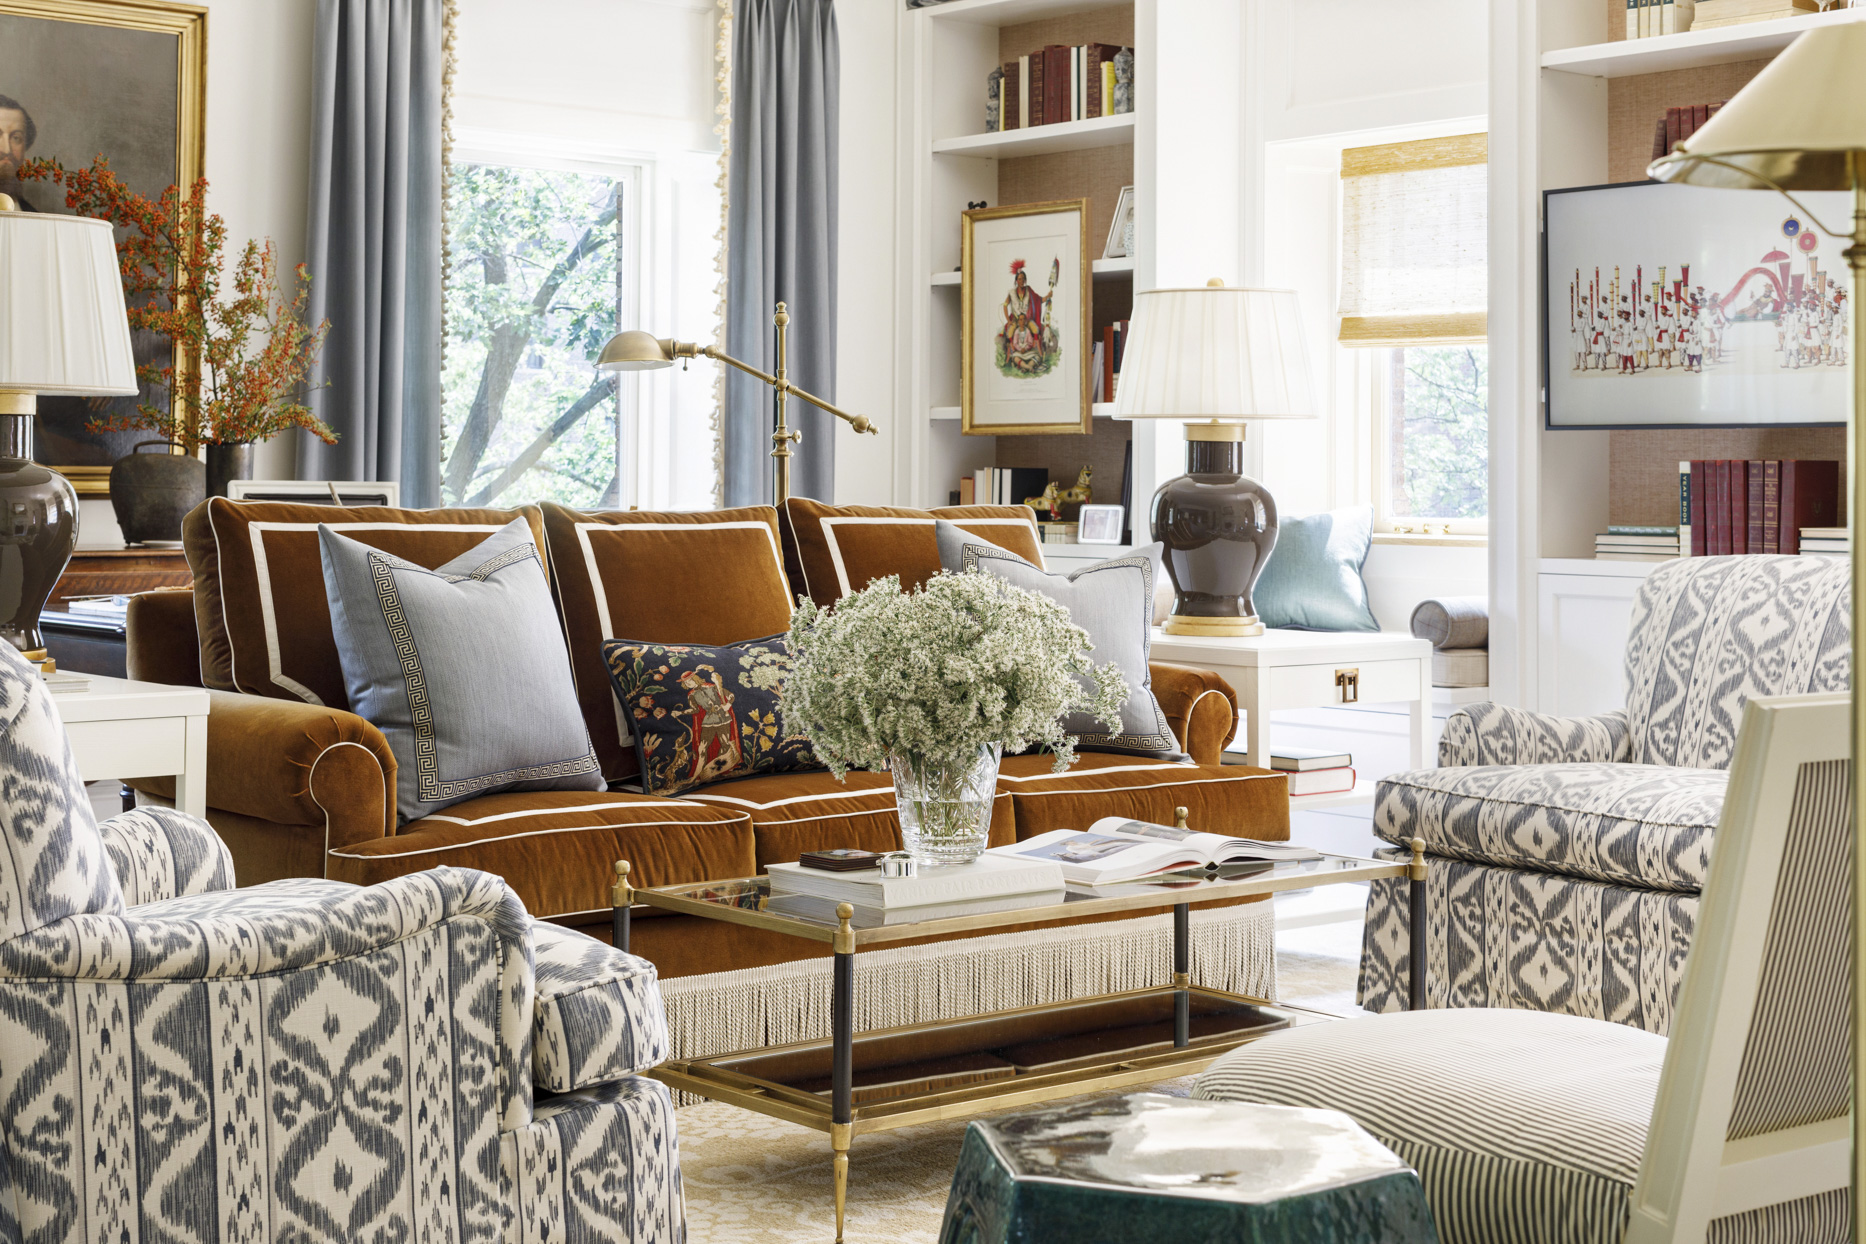 living room couch lamp chair pillow